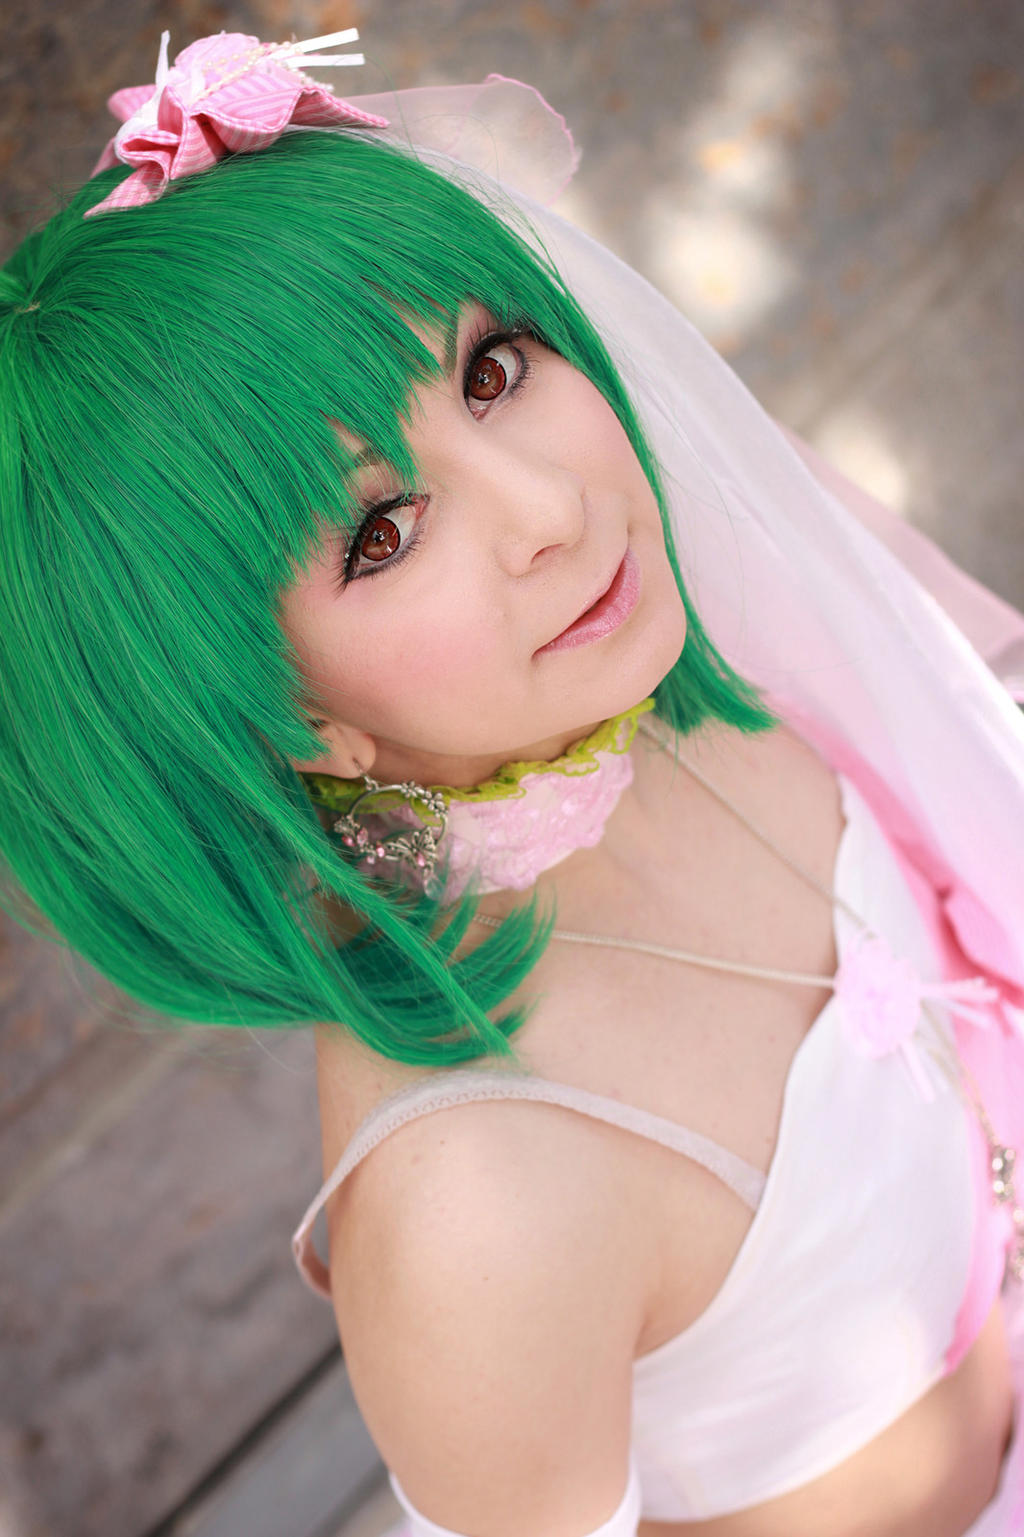 Ranka Lee - Doki Doki by Firiless